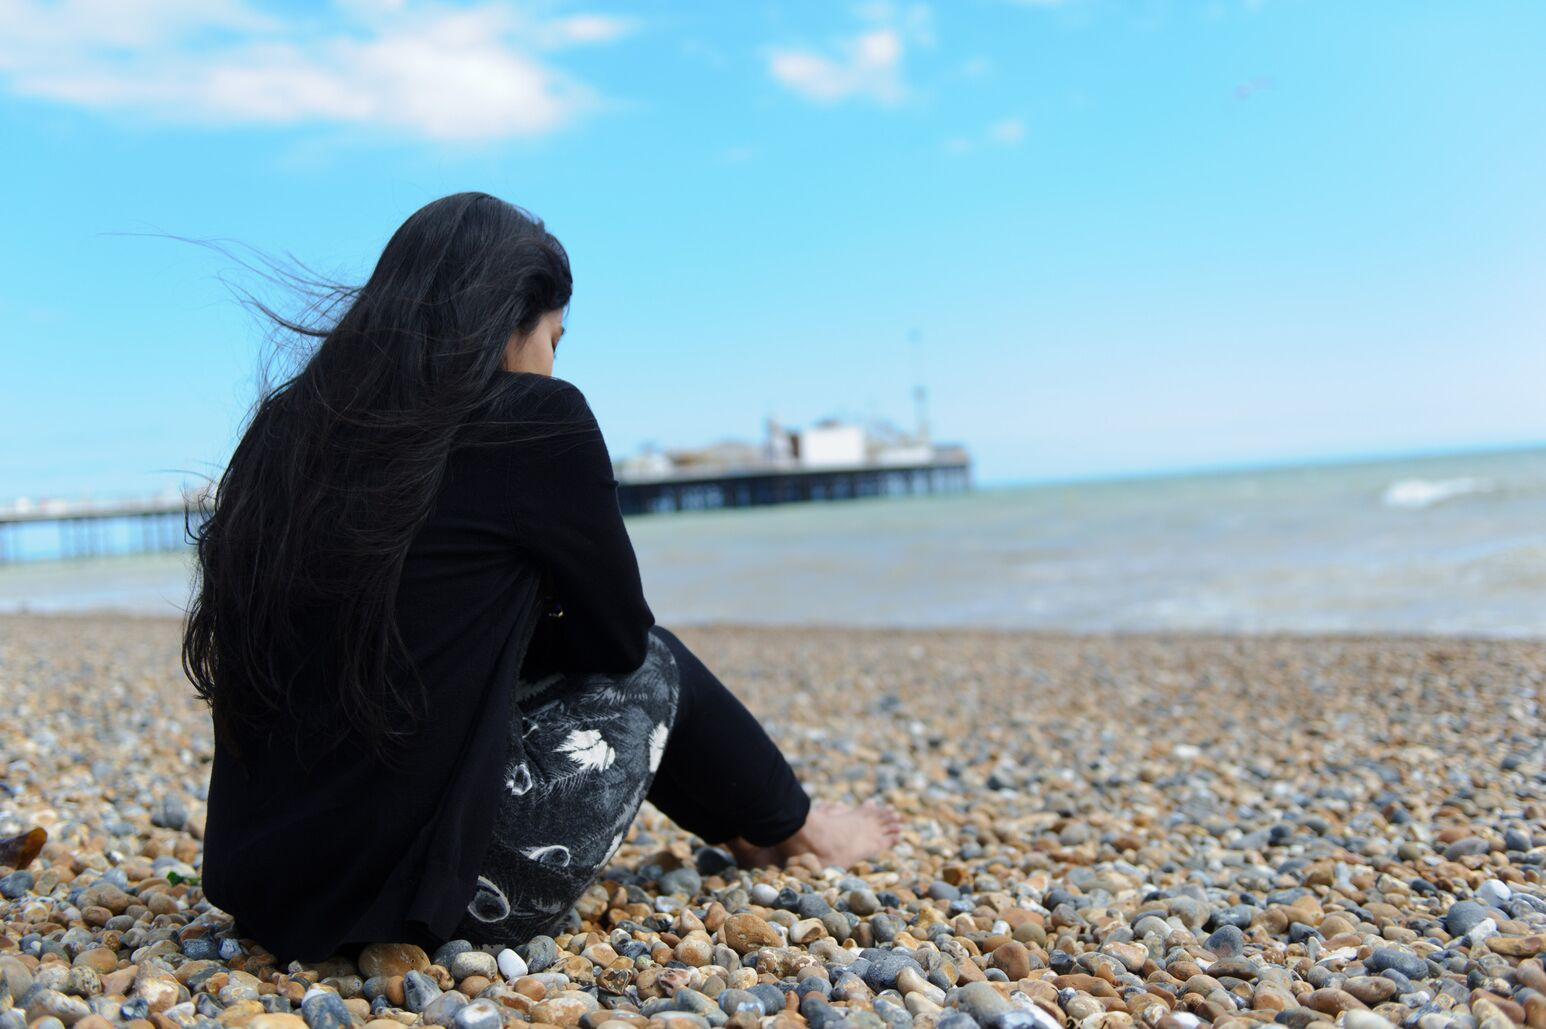 A lonely and apprehensive woman sits on a rocky beach.